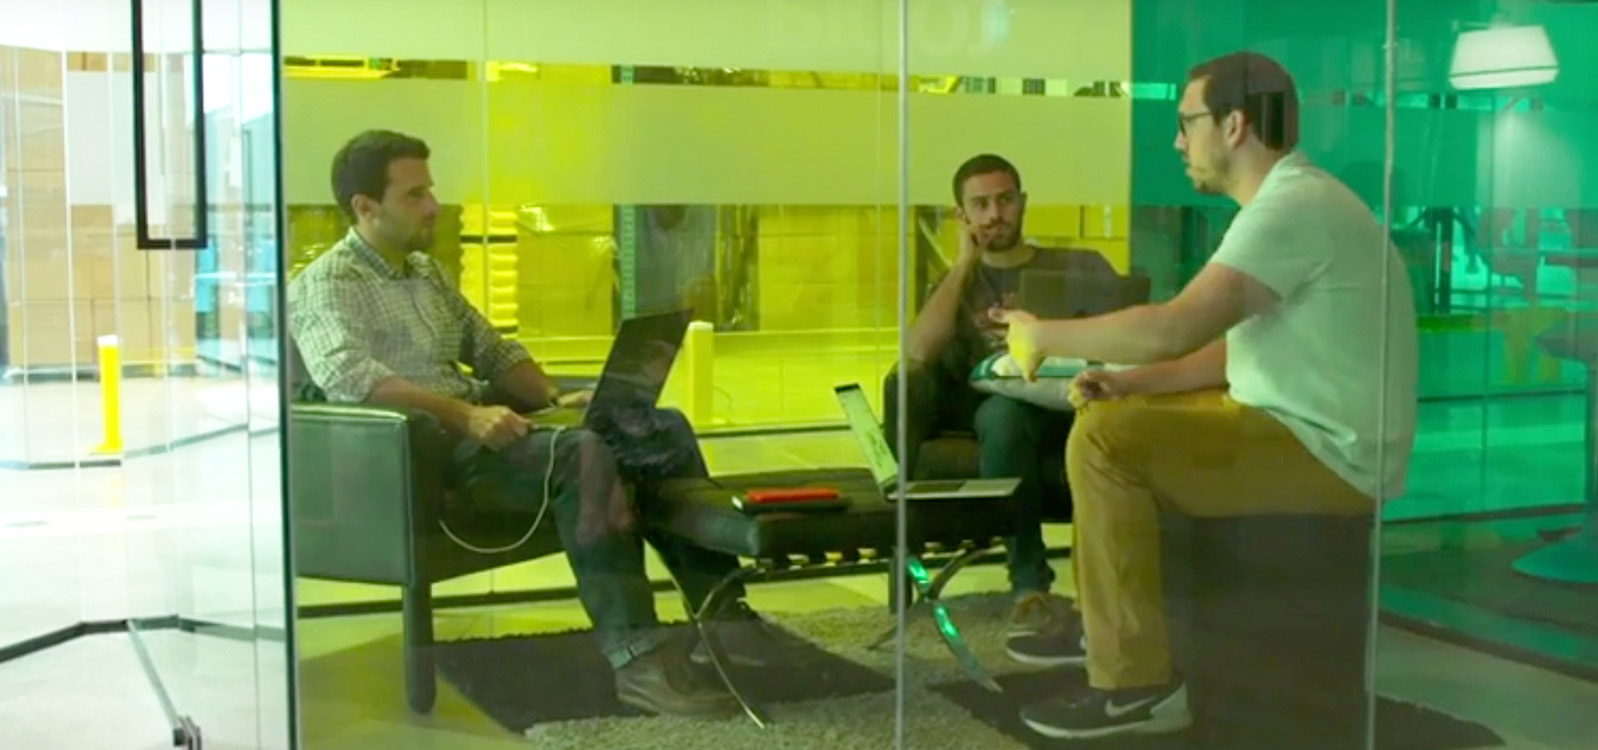 Three men meeting in a small meeting space with glass walls